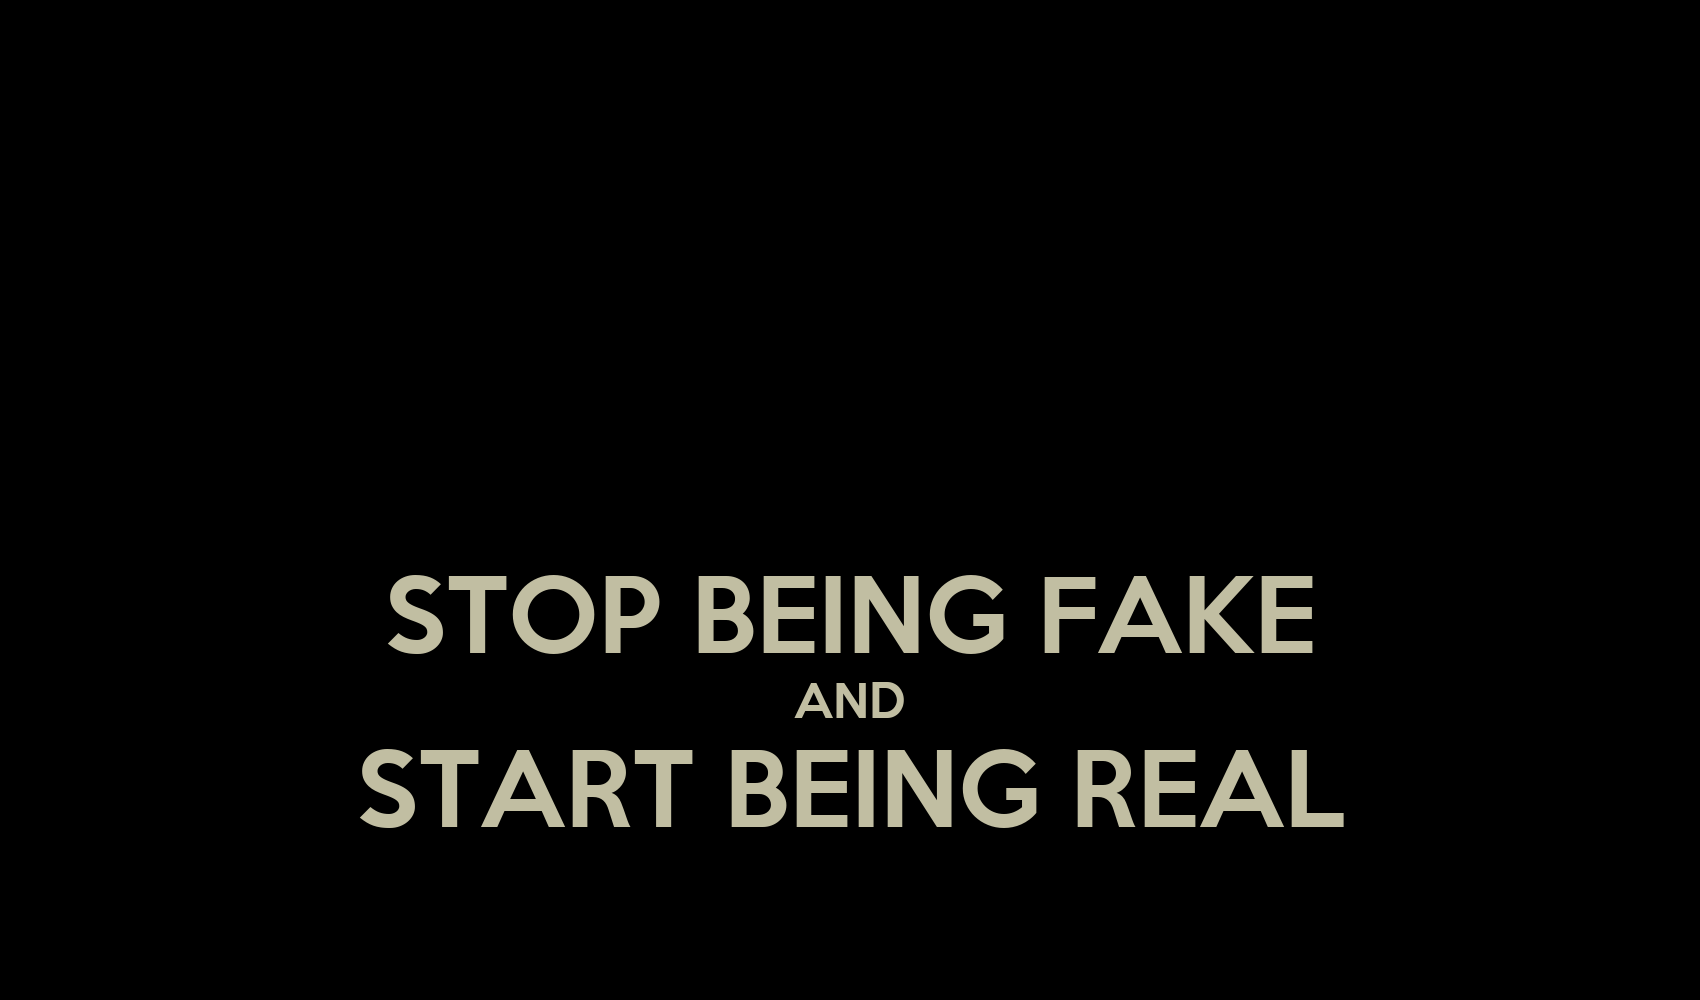 How to Stop Being Fake